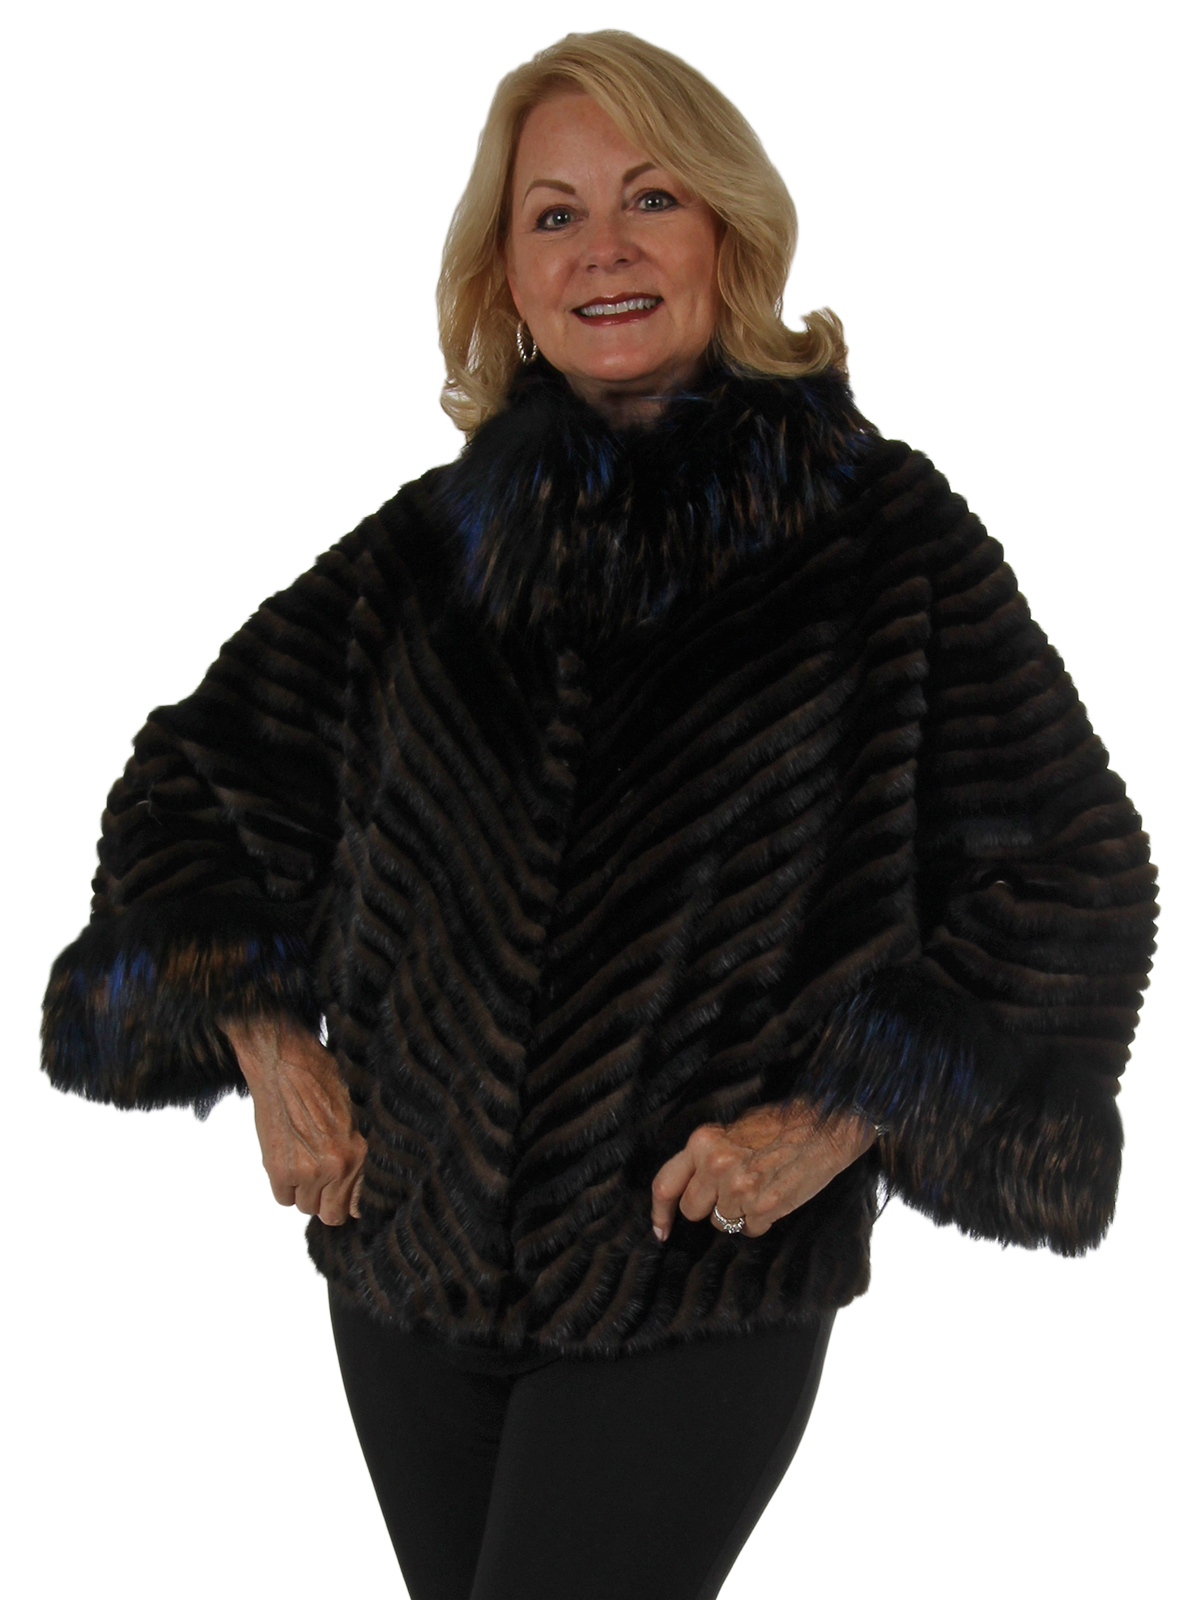 Woman's New Brown and Black Feathered Cross Mink and Rex Rabbit Fur Cape